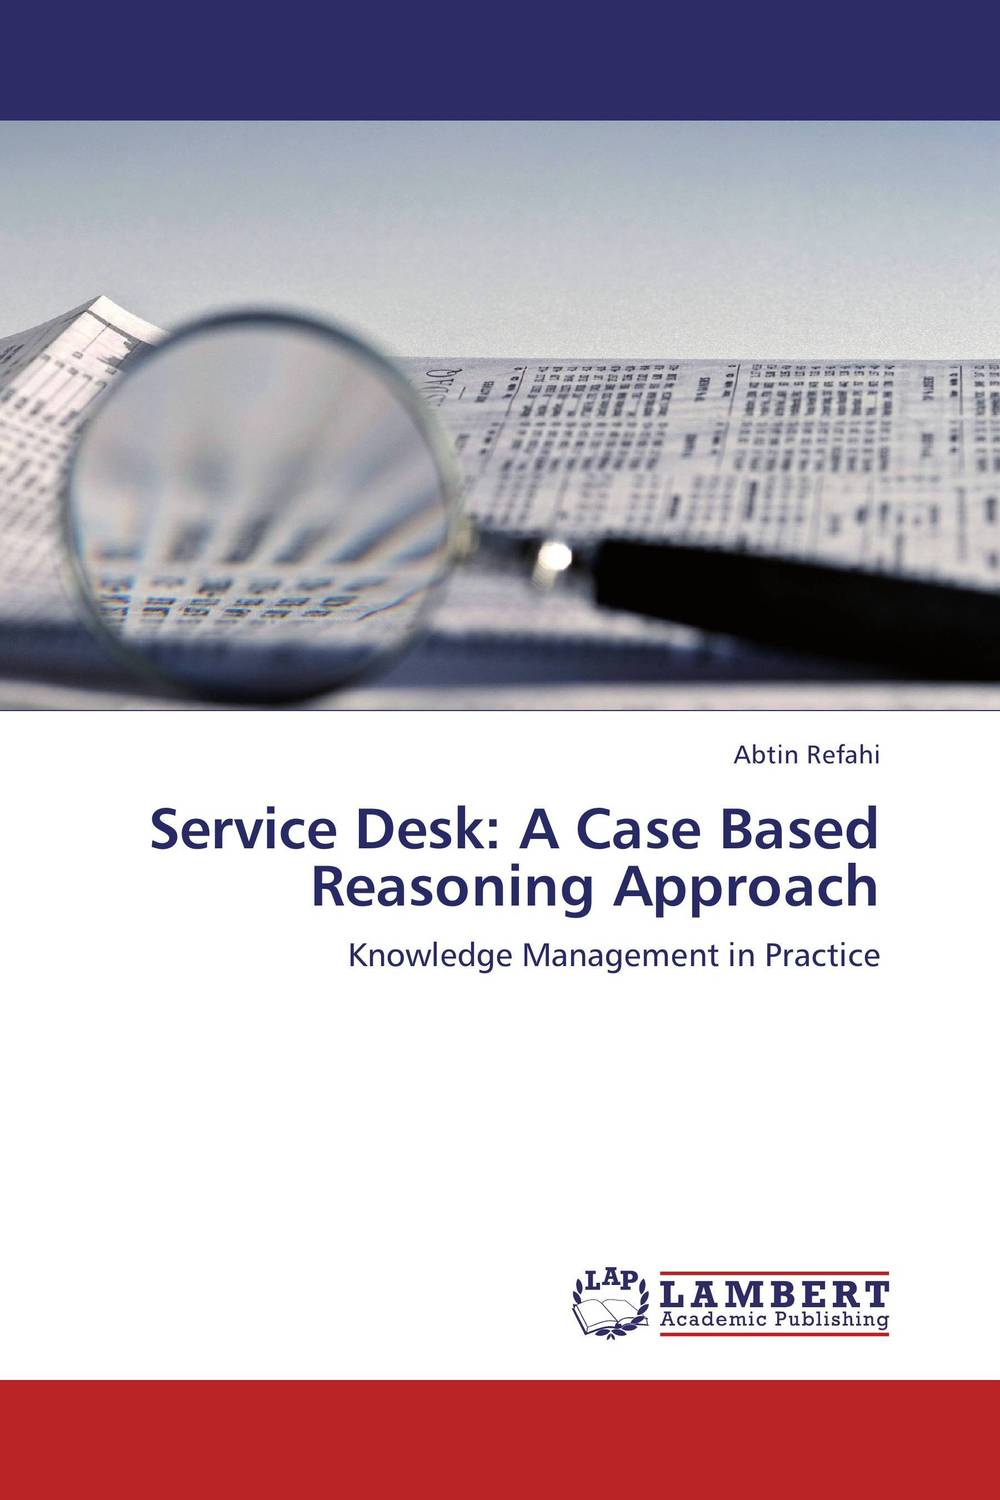 Service Desk: A Case Based Reasoning Approach robert moeller r executive s guide to it governance improving systems processes with service management cobit and itil